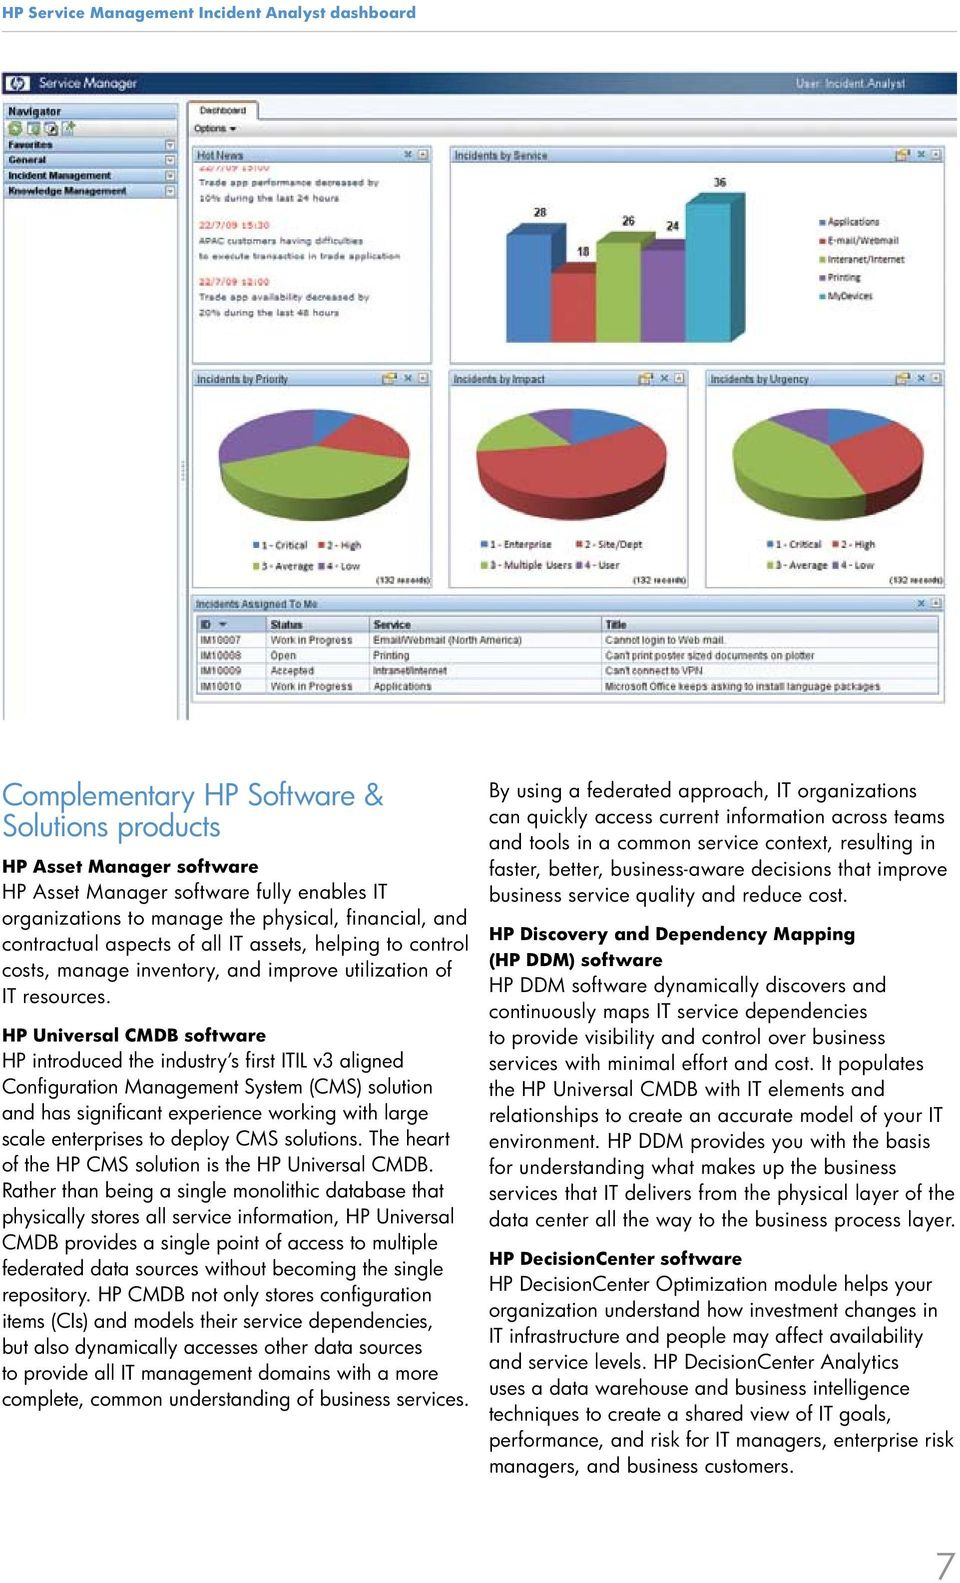 HP Universal CMDB software HP introduced the industry s first ITIL v3 aligned Configuration Management System (CMS) solution and has significant experience working with large scale enterprises to